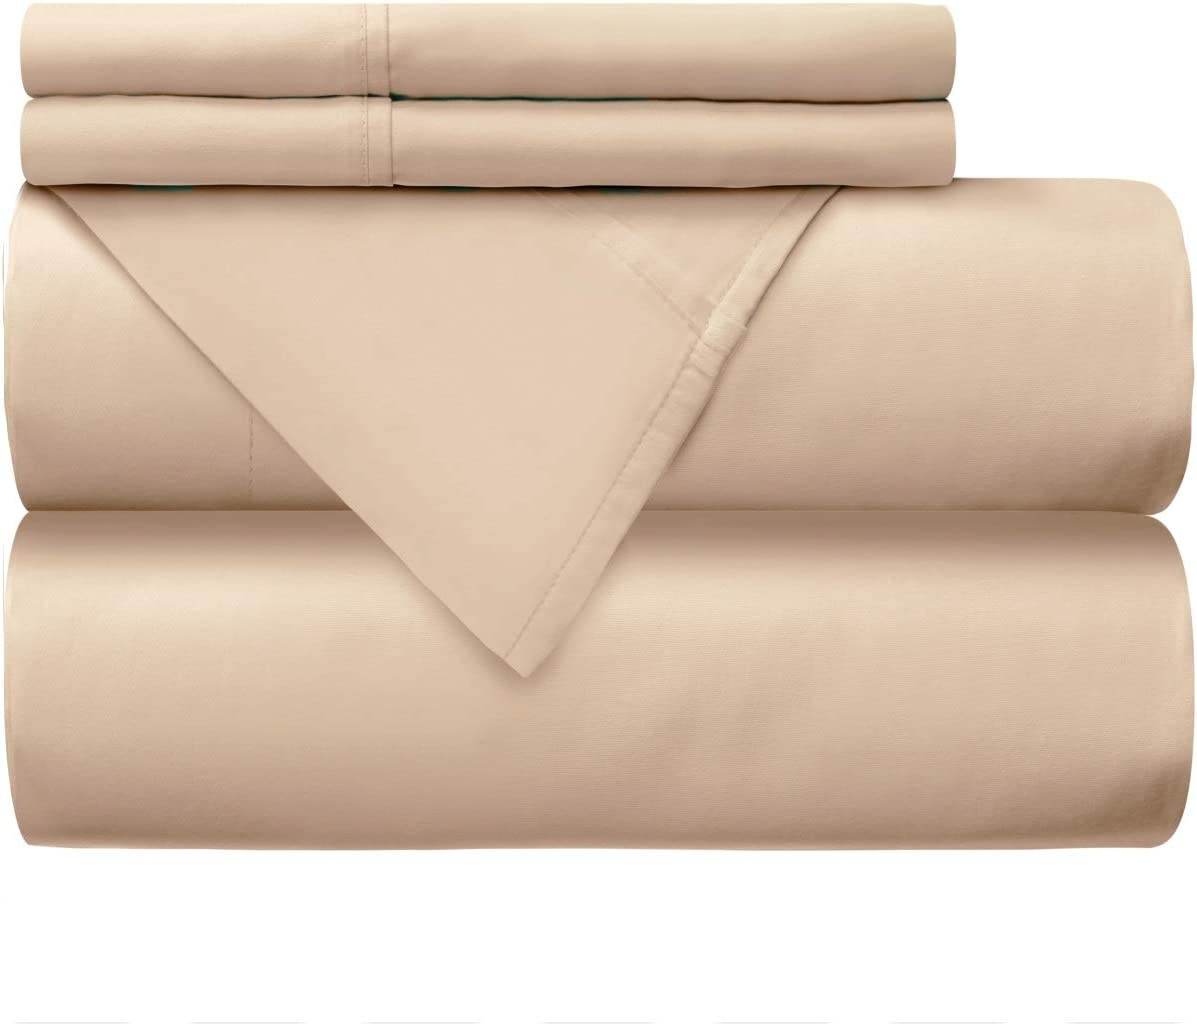 Mellanni 100% Cotton Bed Sheet Set - 300 Thread Count Percale - Deep Pocket - Quality Luxury Bedding - 4 Piece (Full, Ivory)